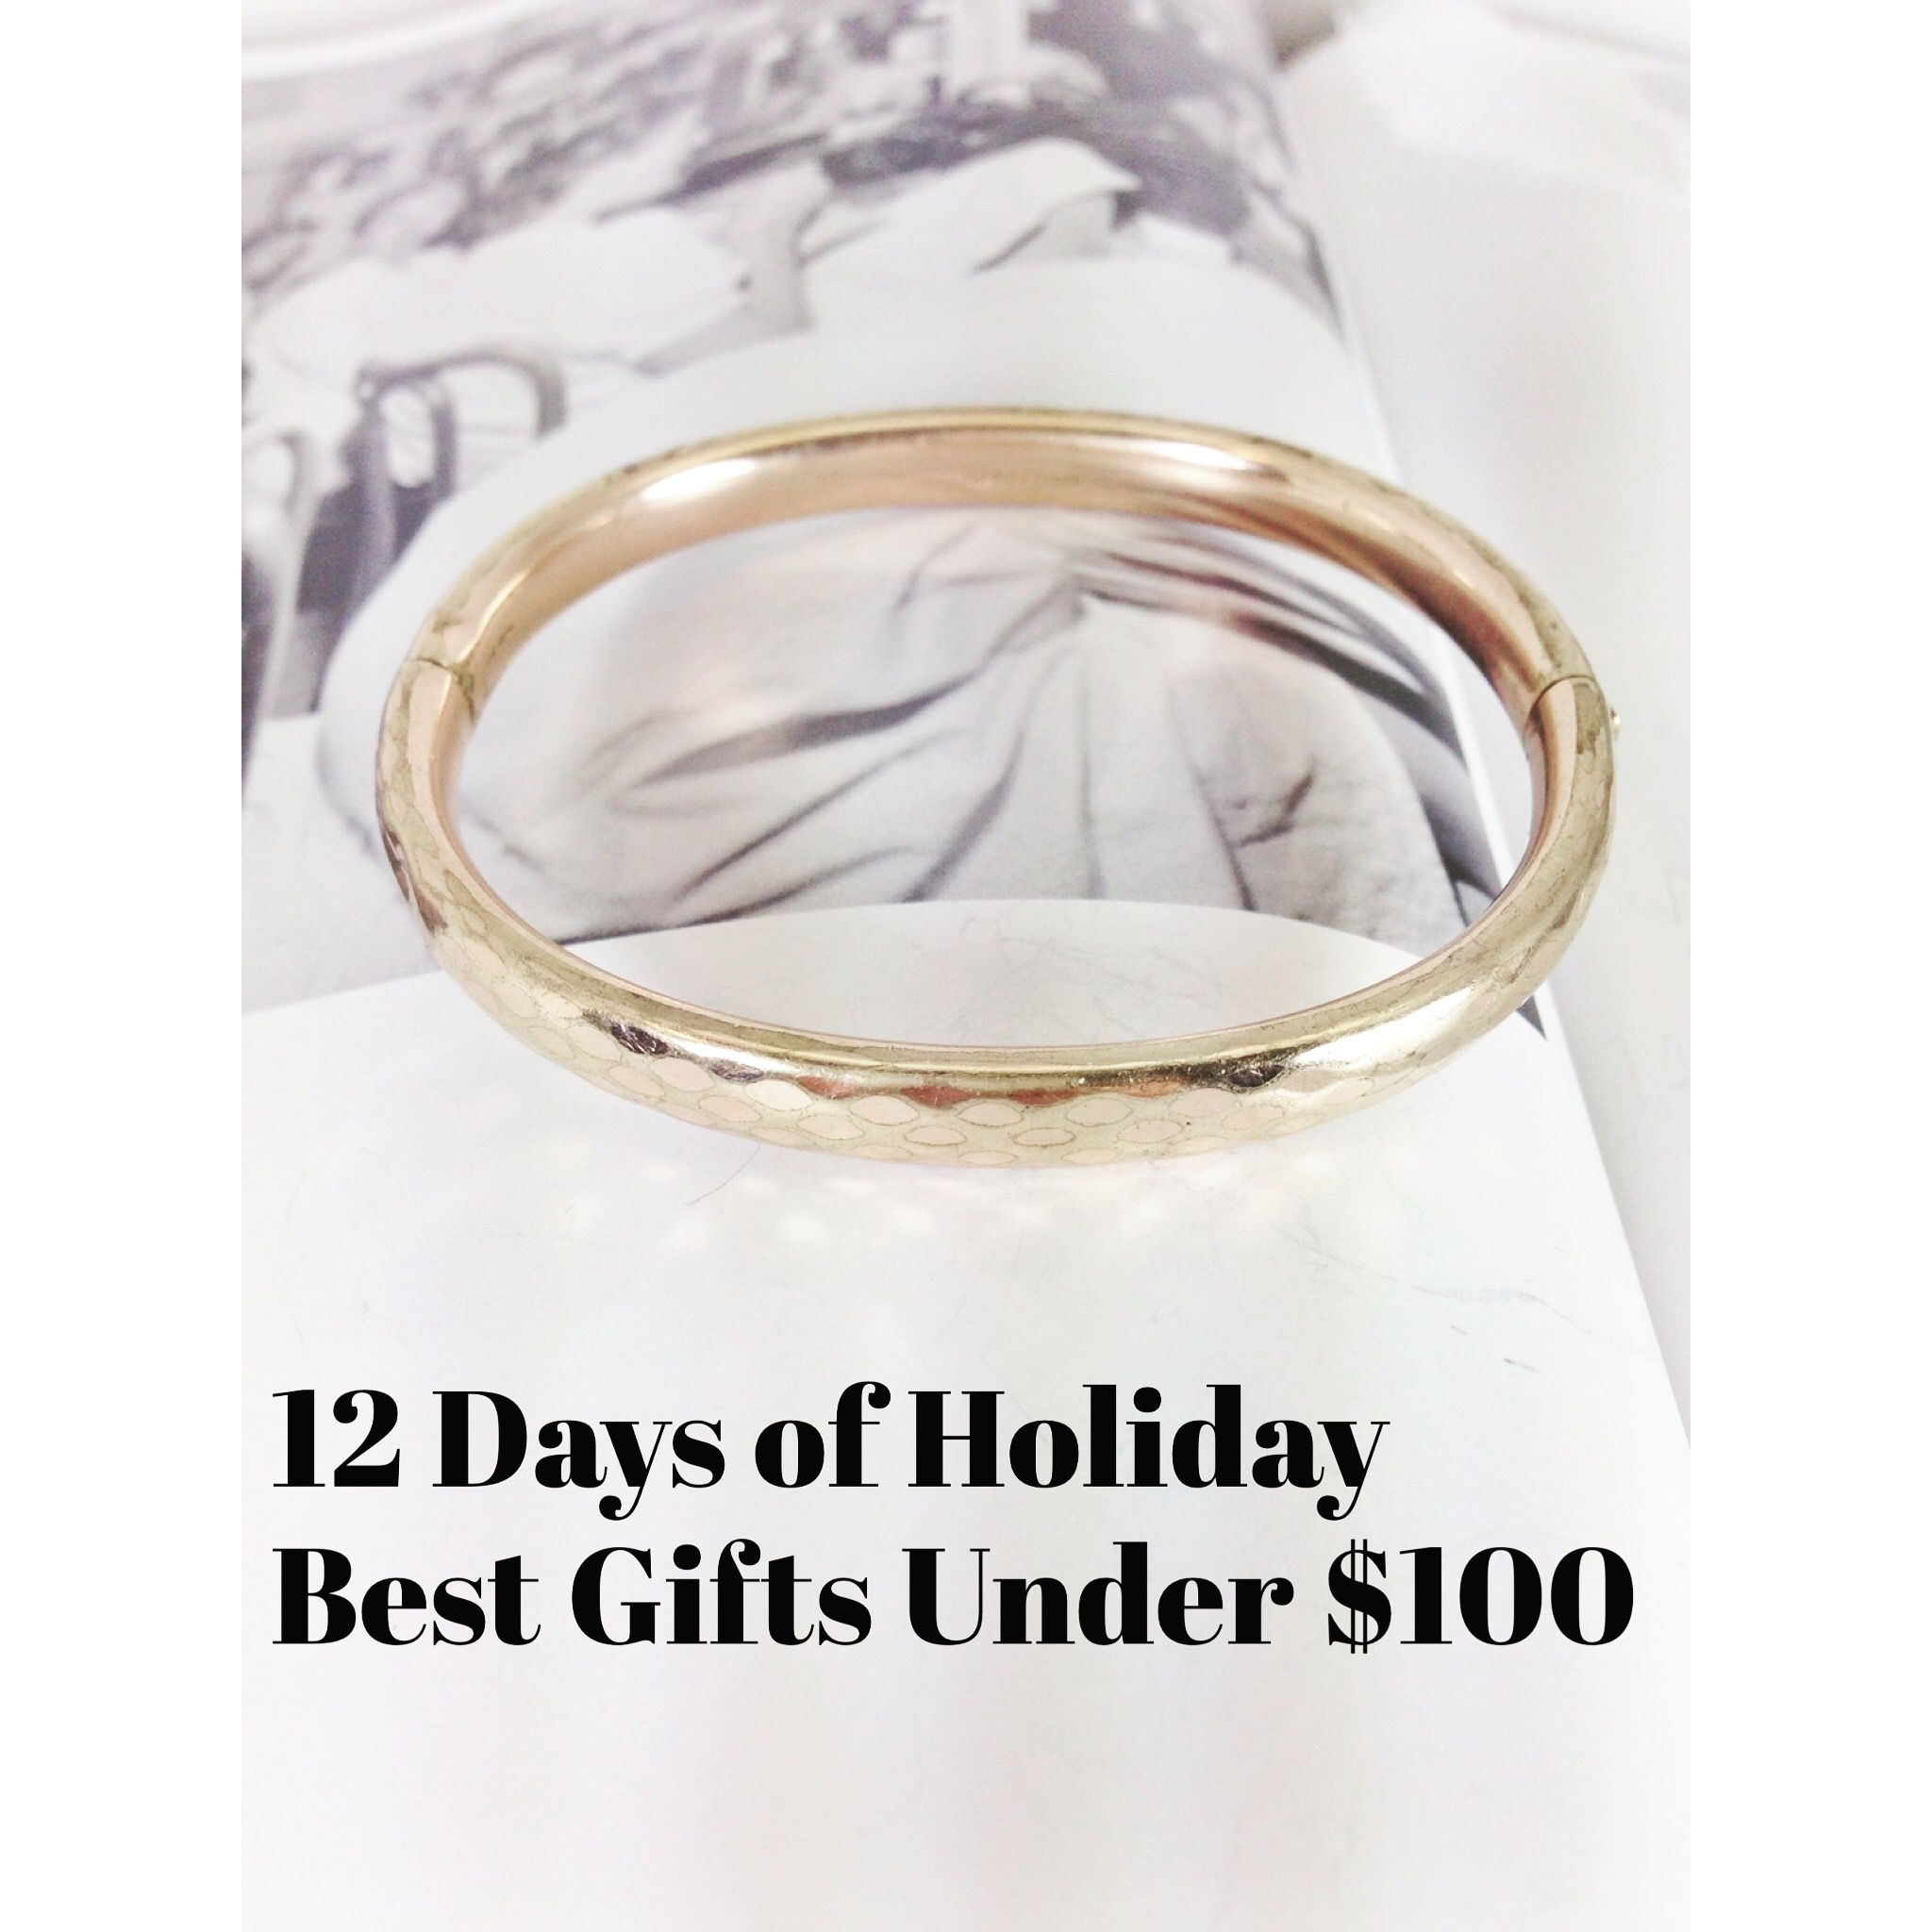 The vintage holiday gift guide - 12 Days of jewelry gift ideas. Day 4 is best Gifts Under $100 at the Stacey Fay Designs shop. http://staceyfaydesigns.com/the-12-days-gift-guide-day-4-gifts-for-under-100/